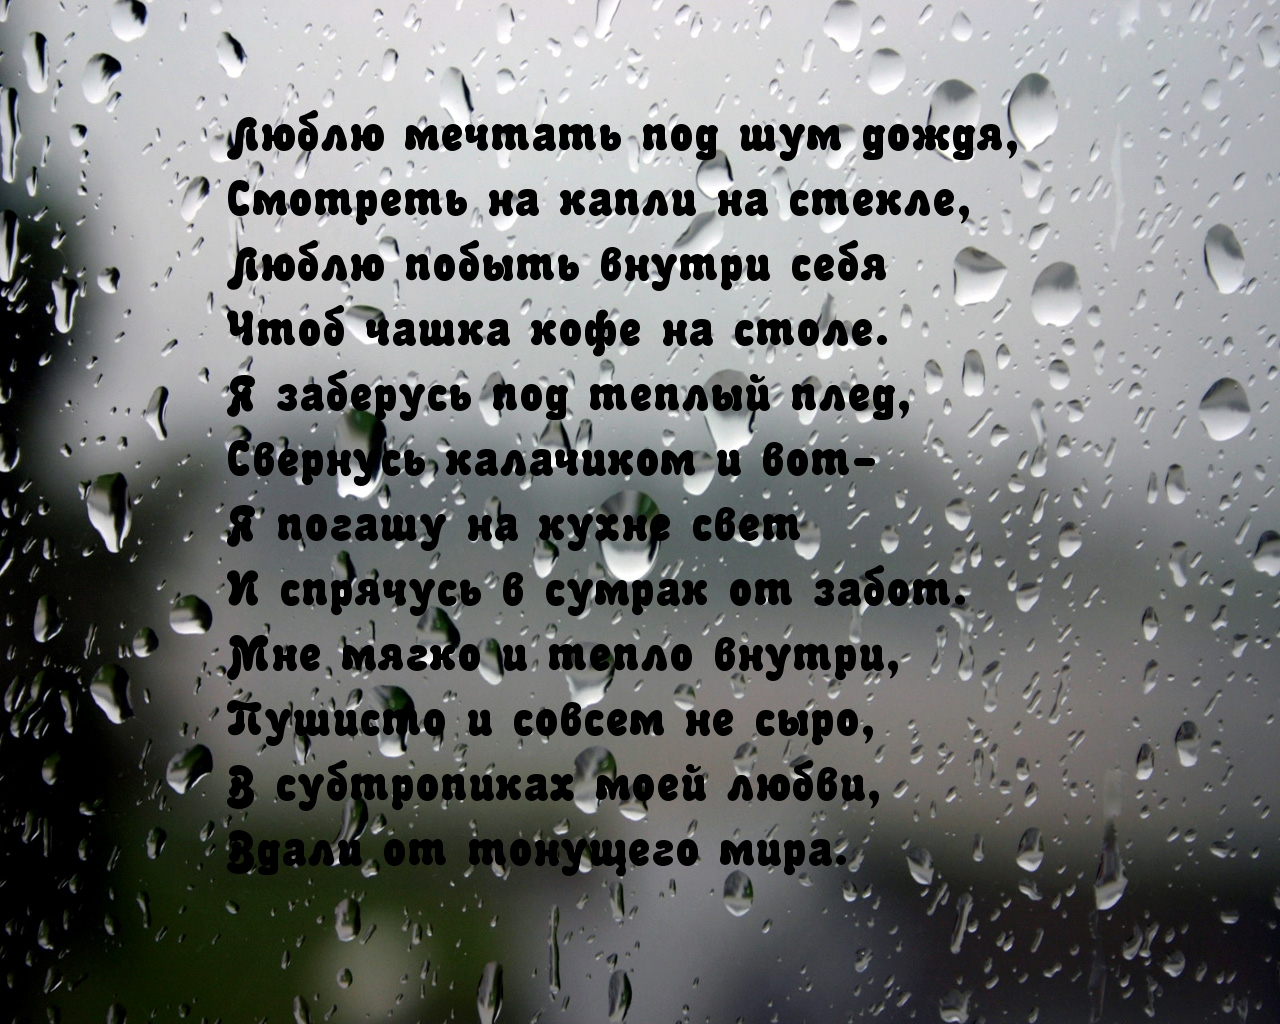 http://www.imagetext.ru/pics_max/images_2513.jpg